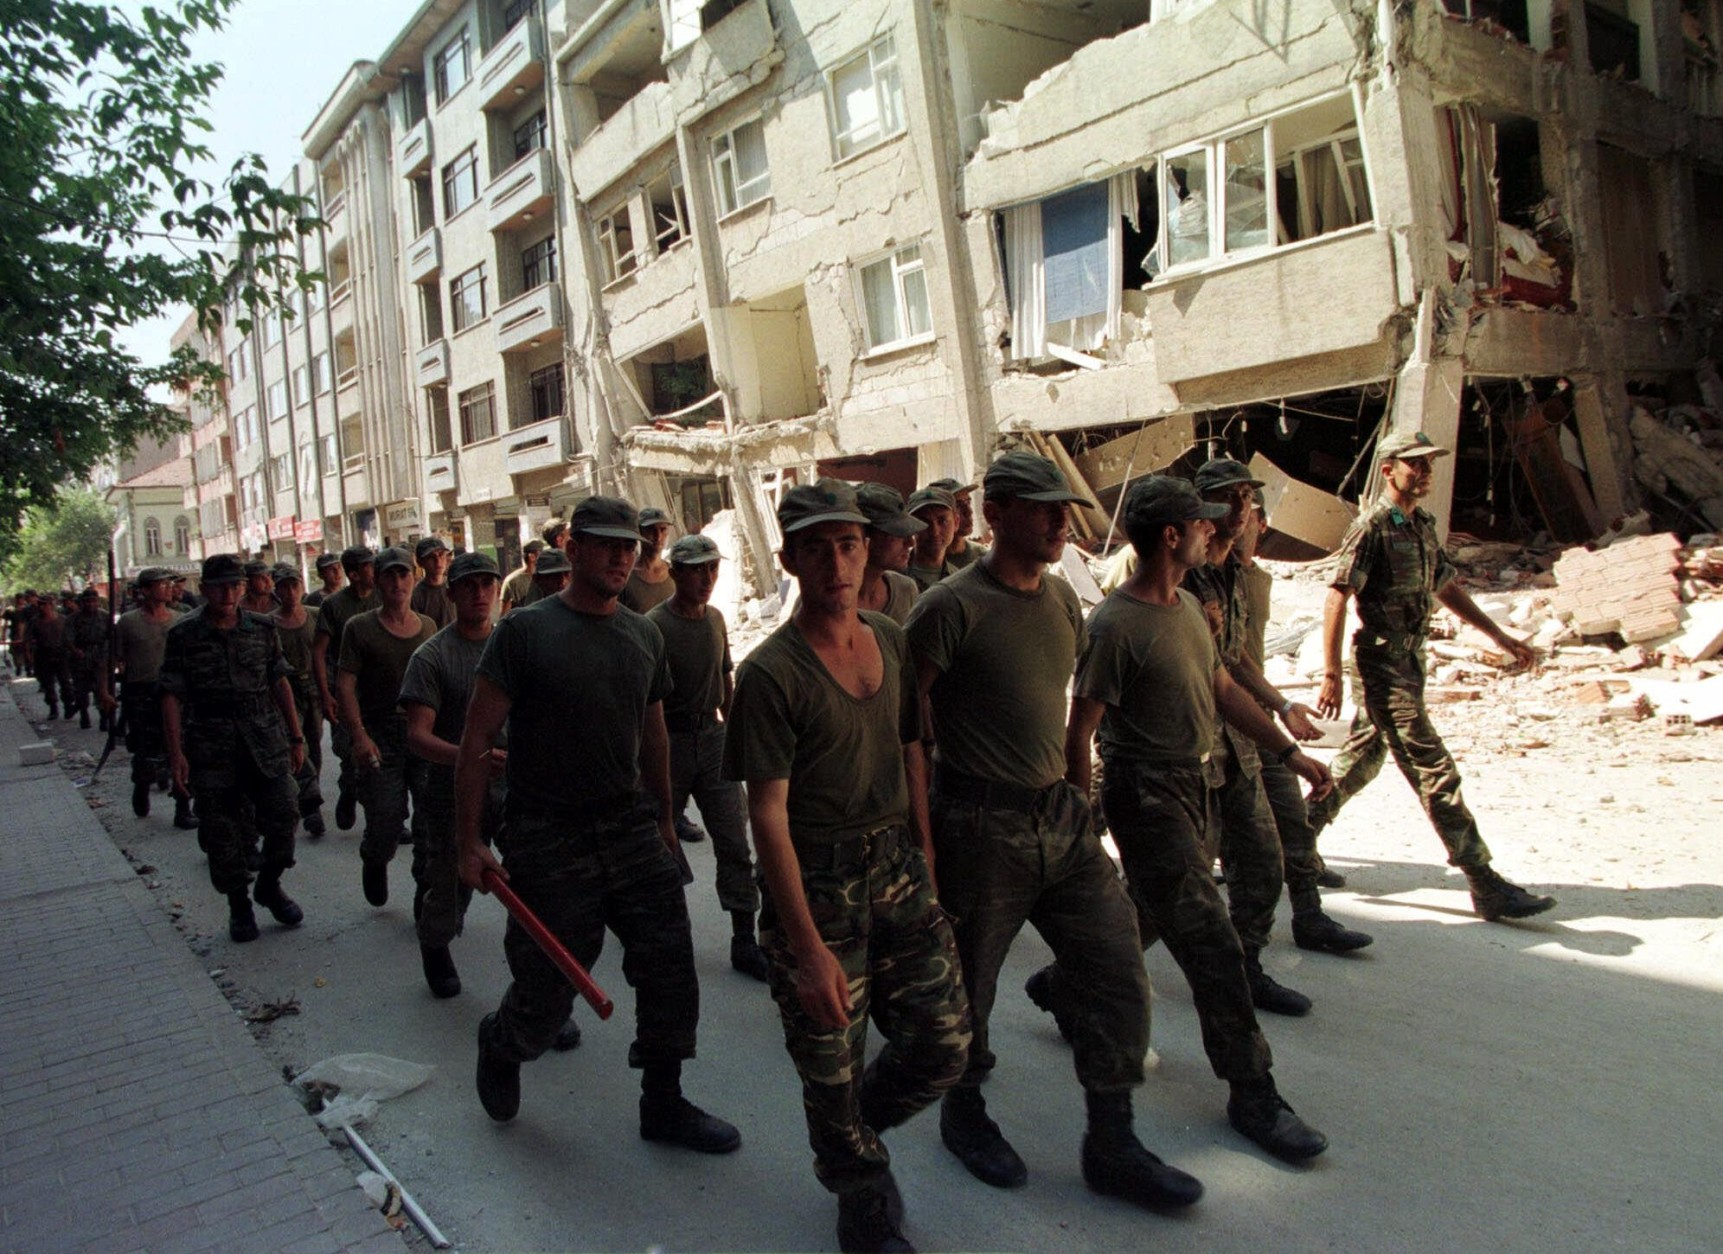 Turkish soldiers participating in rescue operations, walk past devastated  buildings in downtown Sakarya, western Turkey, Wednesday Aug. 18, 1999 after Tuesday's 7.4 magnitude quake. With thousands of people reported missing along an 80-mile arc of destruction left by a devastating earthquake, disaster relief teams from around the world Wednesday joined overwhelmed Turkish rescue crews in the hunt for bodies and survivors. (AP Photo/Burhan Ozbilici)